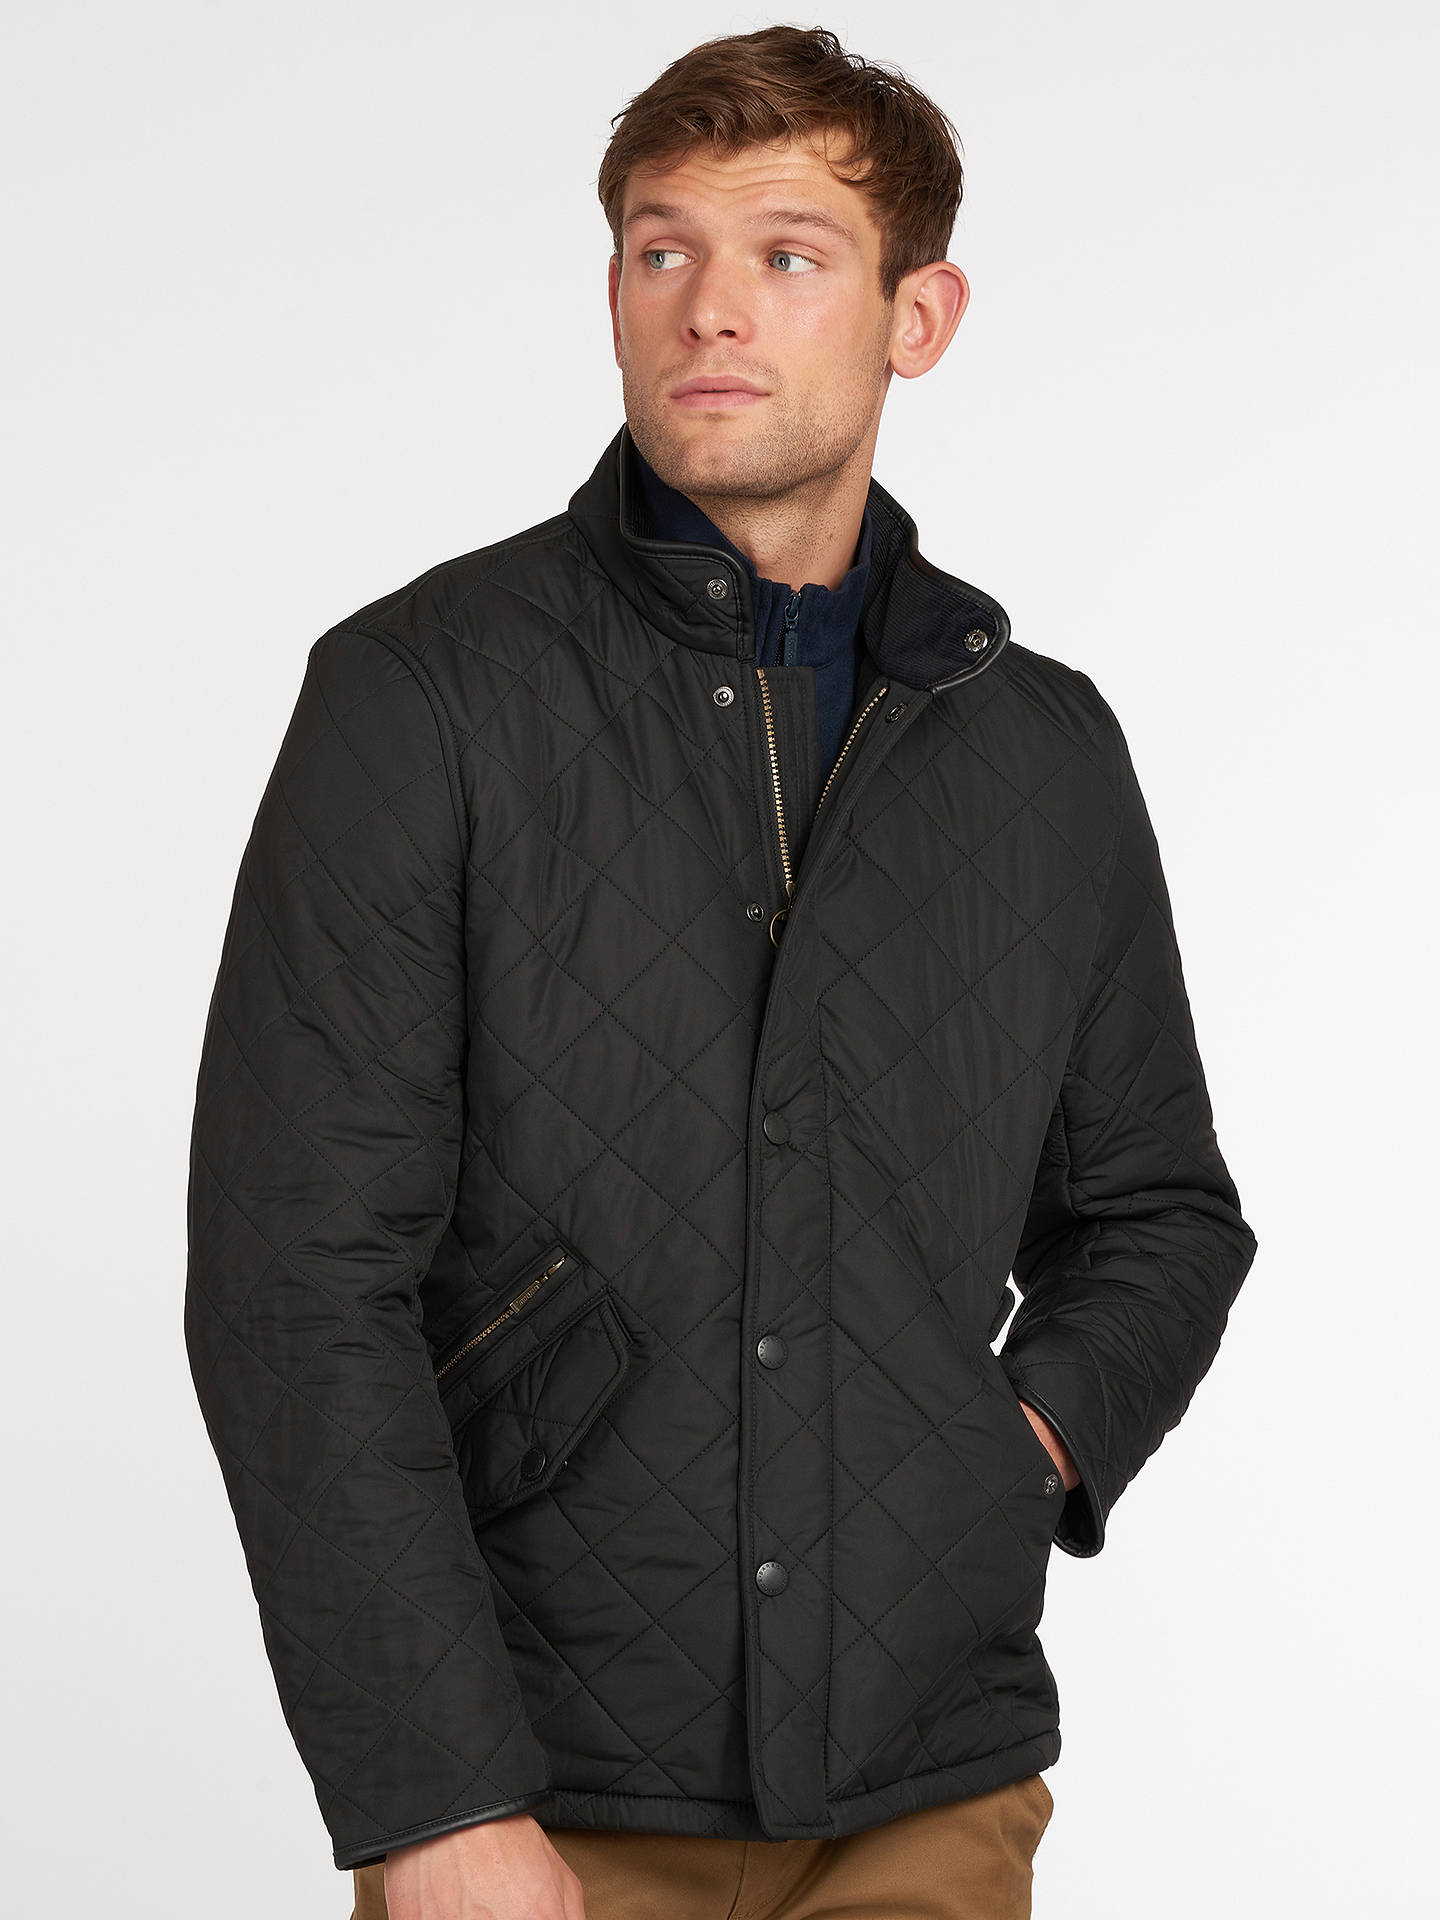 04abceea8176 Barbour Lifestyle Powell Quilted Jacket at John Lewis   Partners